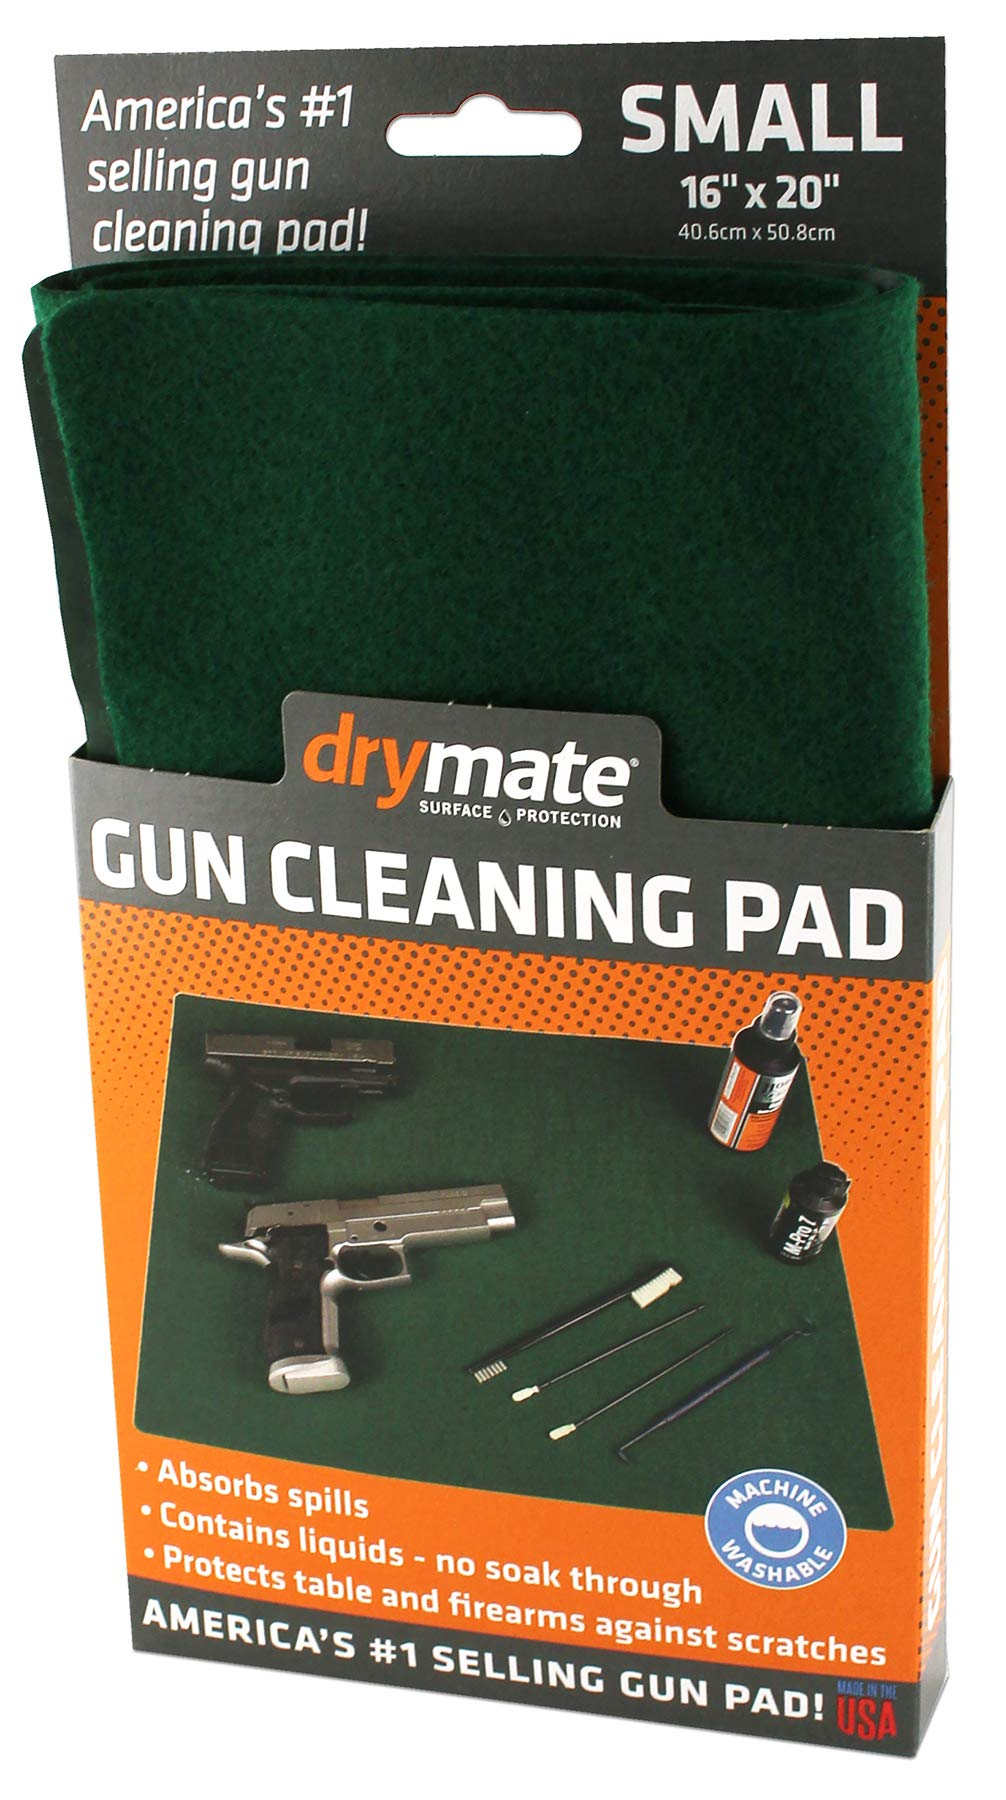 Drymate GPG1620 Handgun Size Gun Cleaning Pad, 16'' x 20'', Green by Drymate